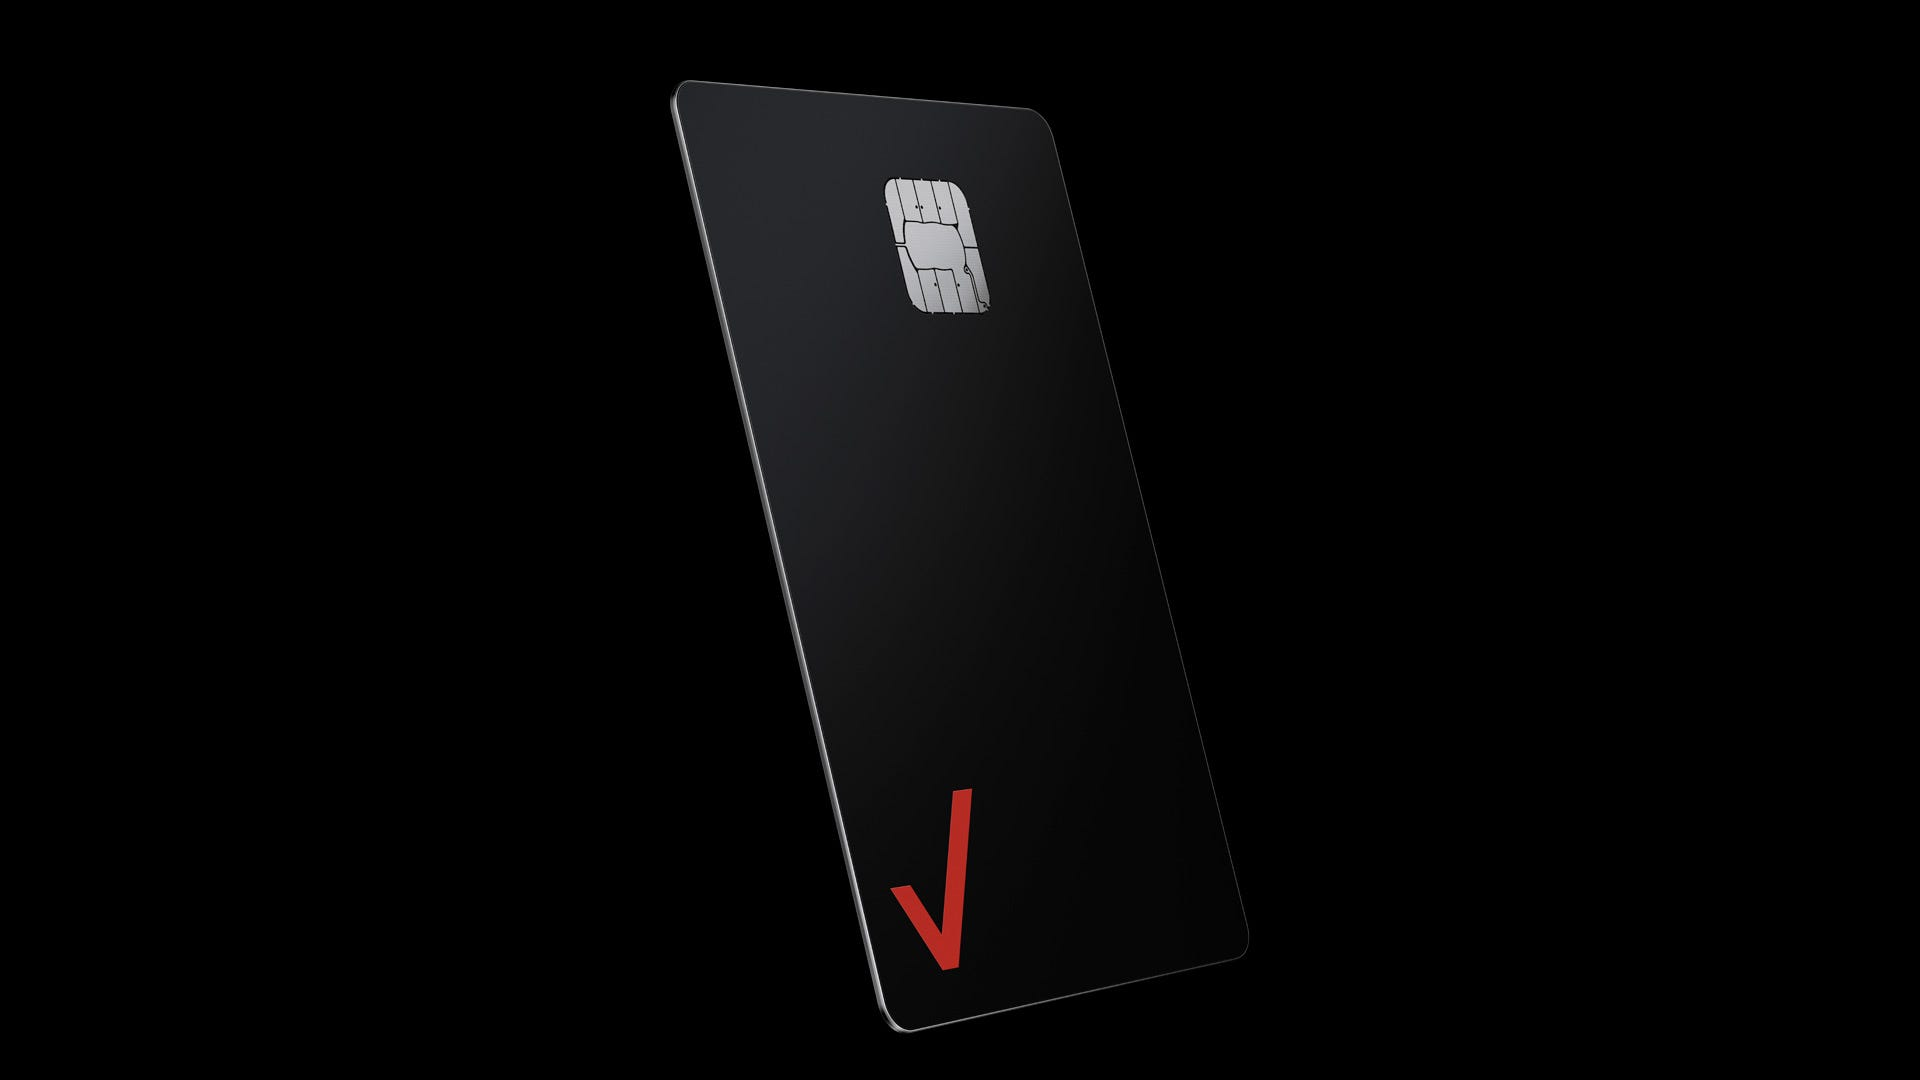 Verizon to launch its own Visa credit card later this month